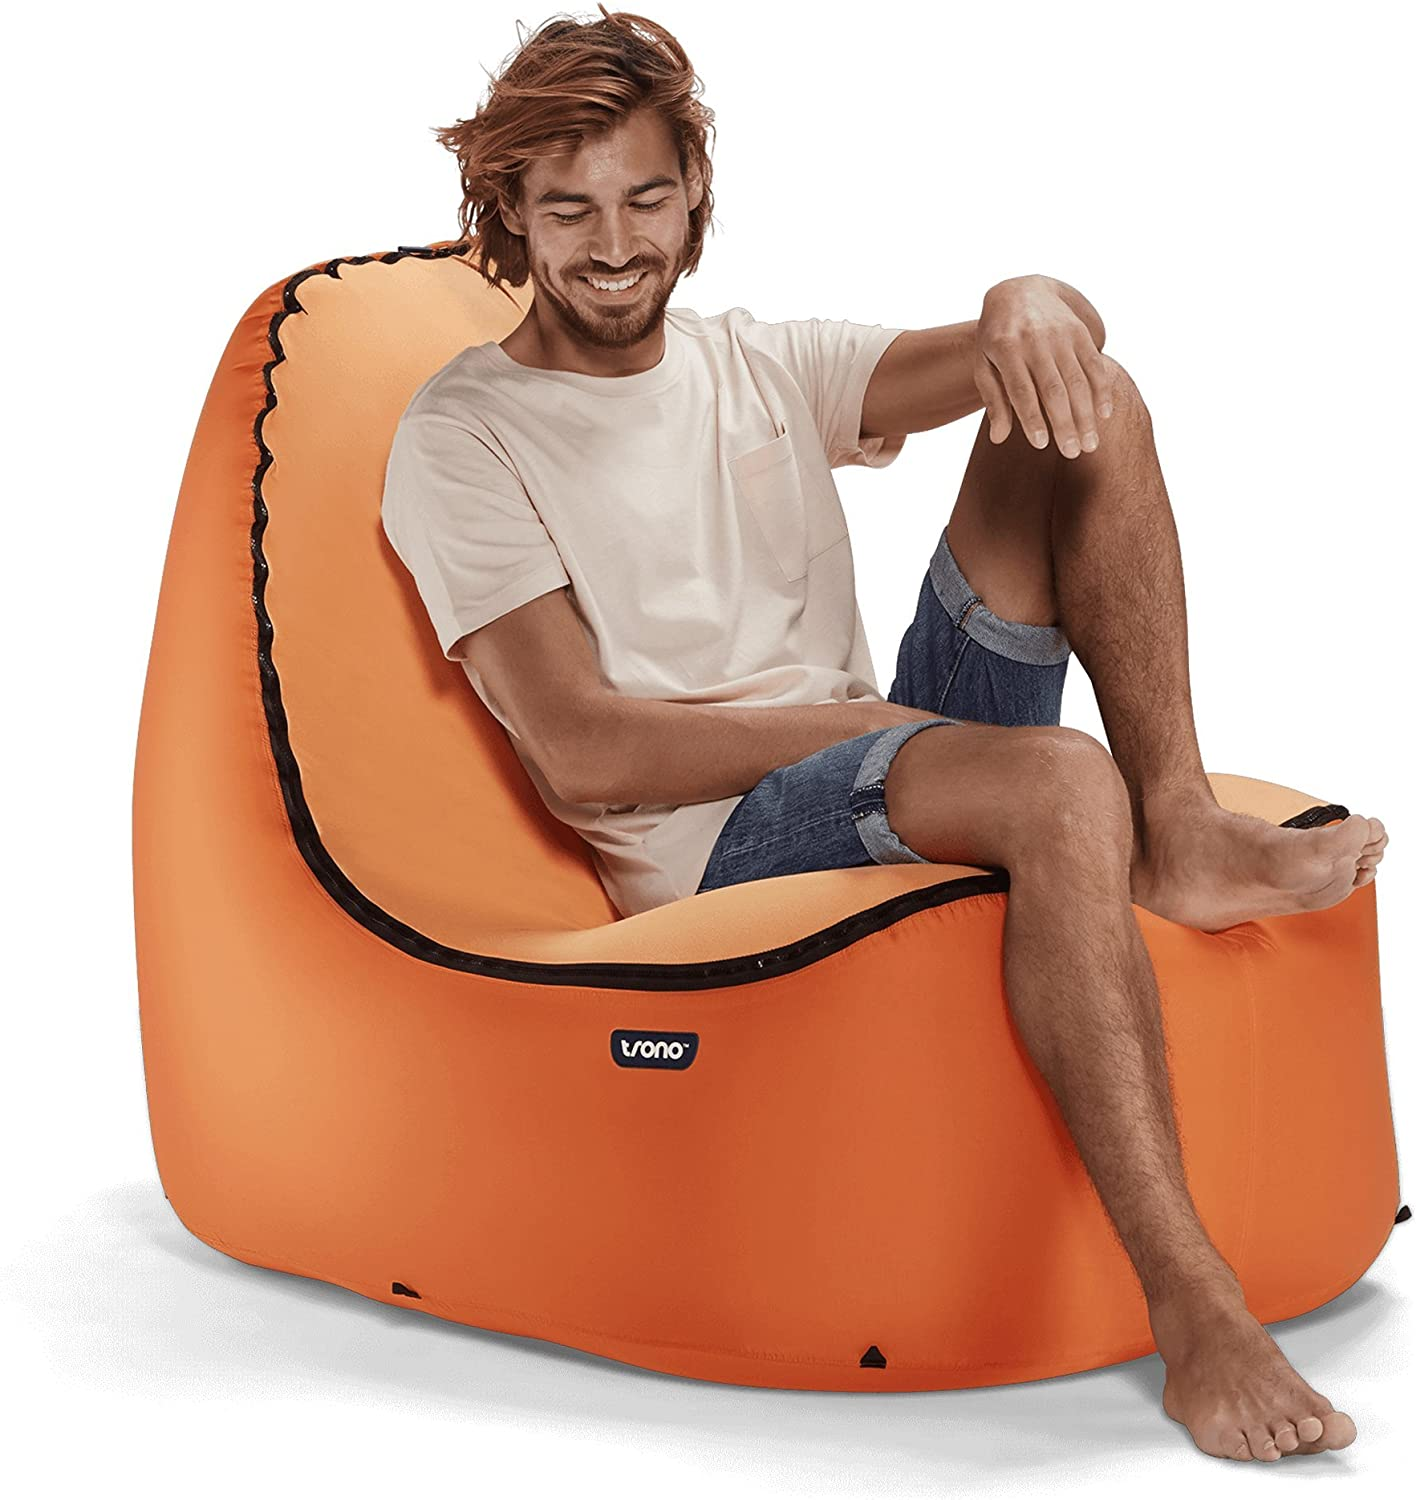 Trono Inflatable Lounge Chair W NoStrain Back Support   Don'T Settle For A Laying On A Hammock Lounger, Hangout On An EasyInflate Comfy Compact Lightweight Durable Outdoor Sofa Couch Instead